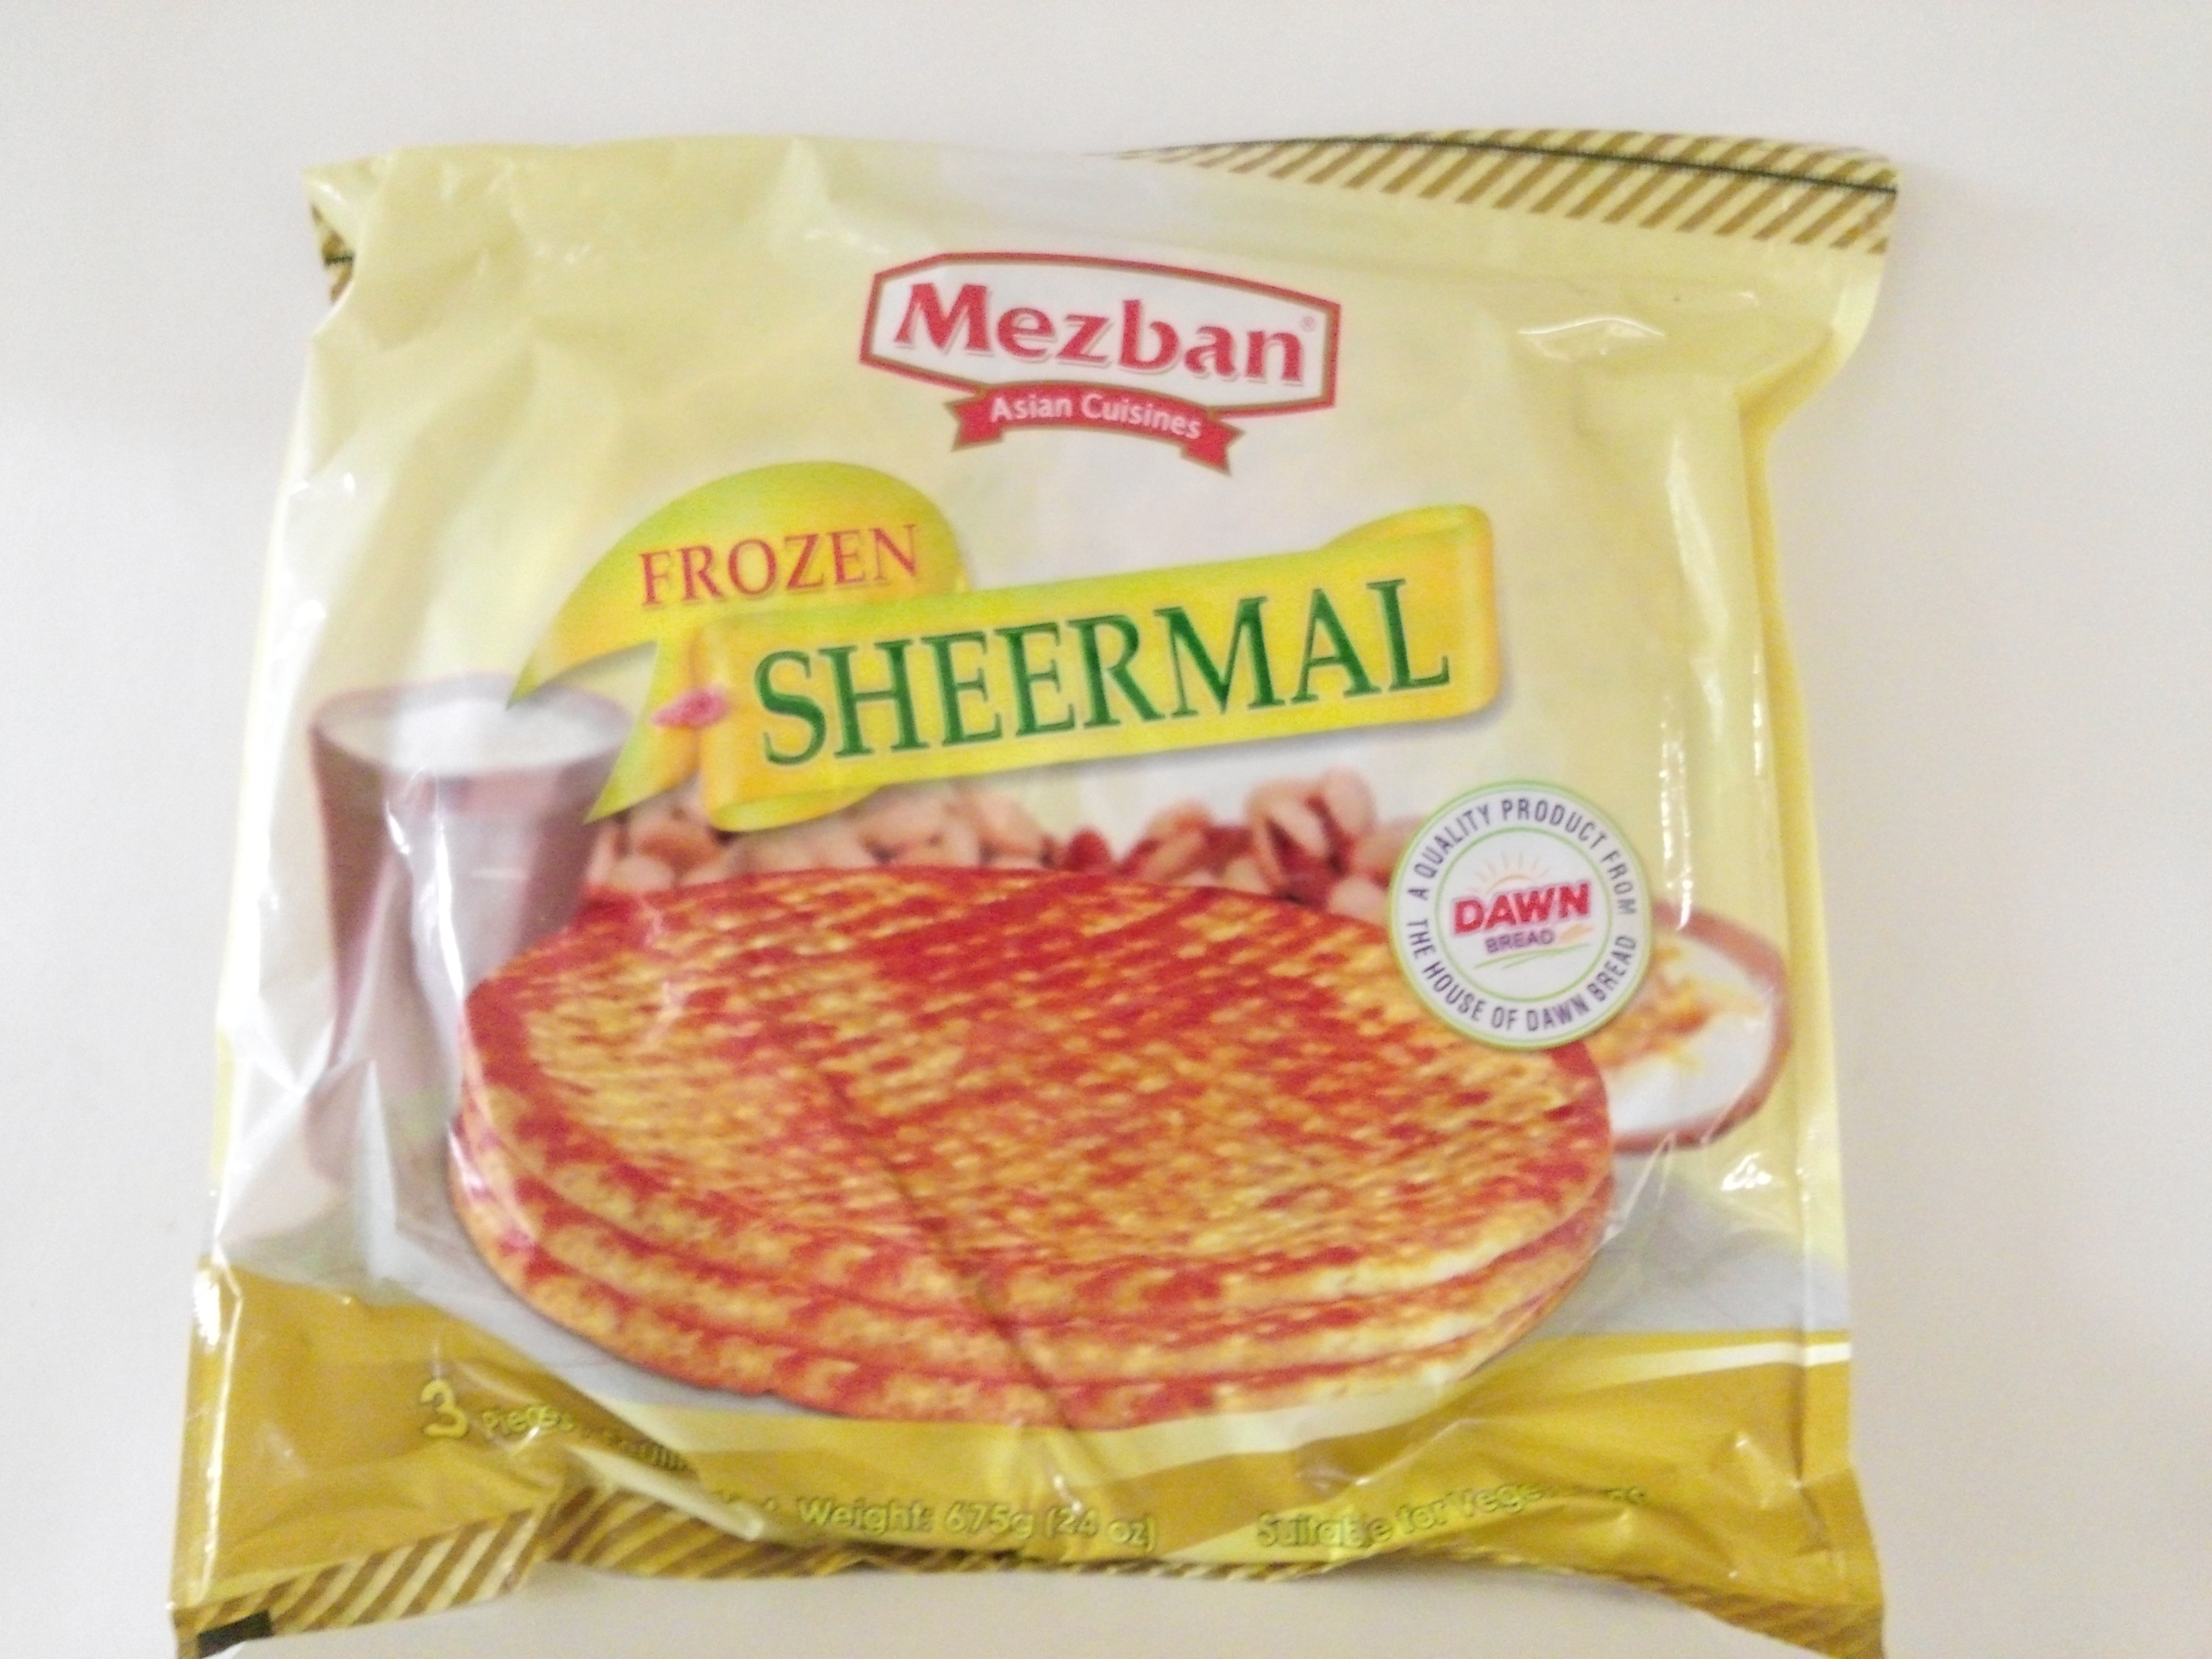 Mezban's Sheermal 3 Pcs 23.30 oz